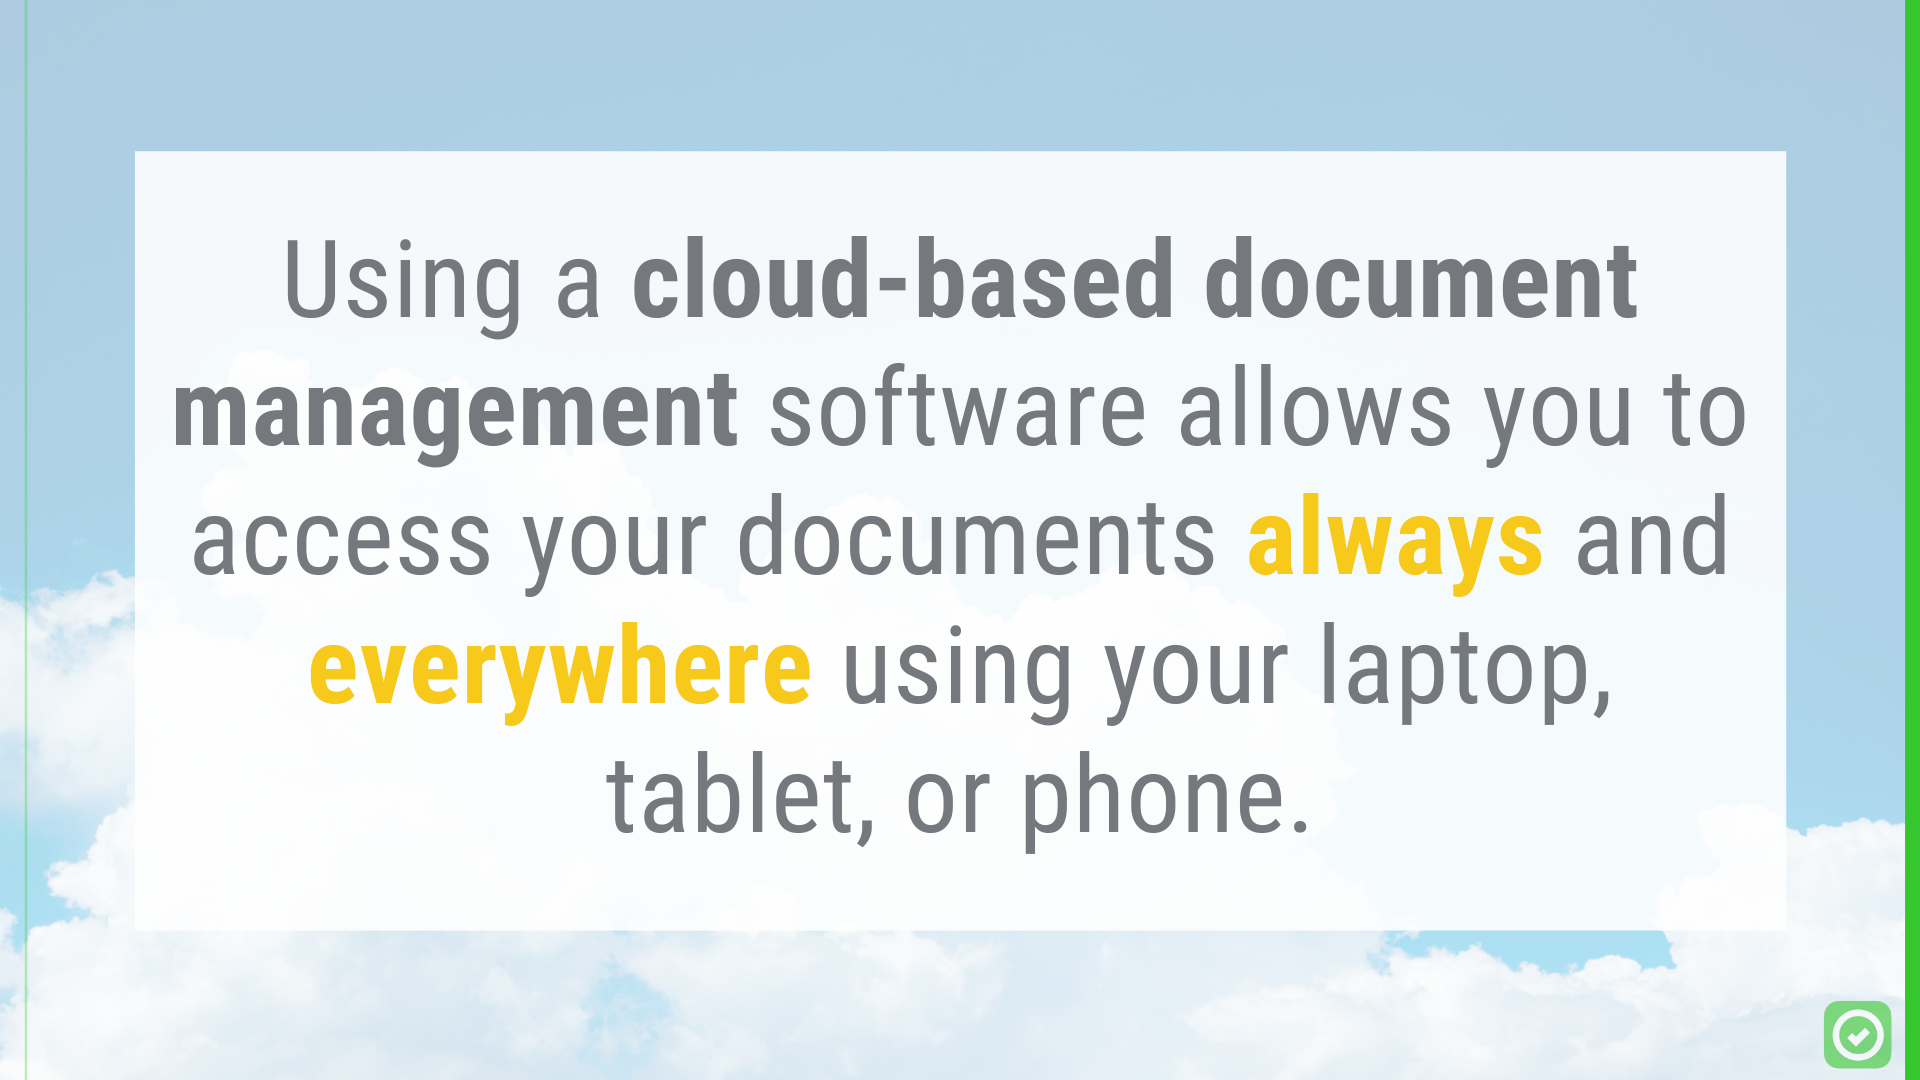 Using a cloud-based document management software (like Google Drive or Dropbox) allows you to access your documents always and everywhere using your laptop, tablet, or phone. | ArchiSnapper